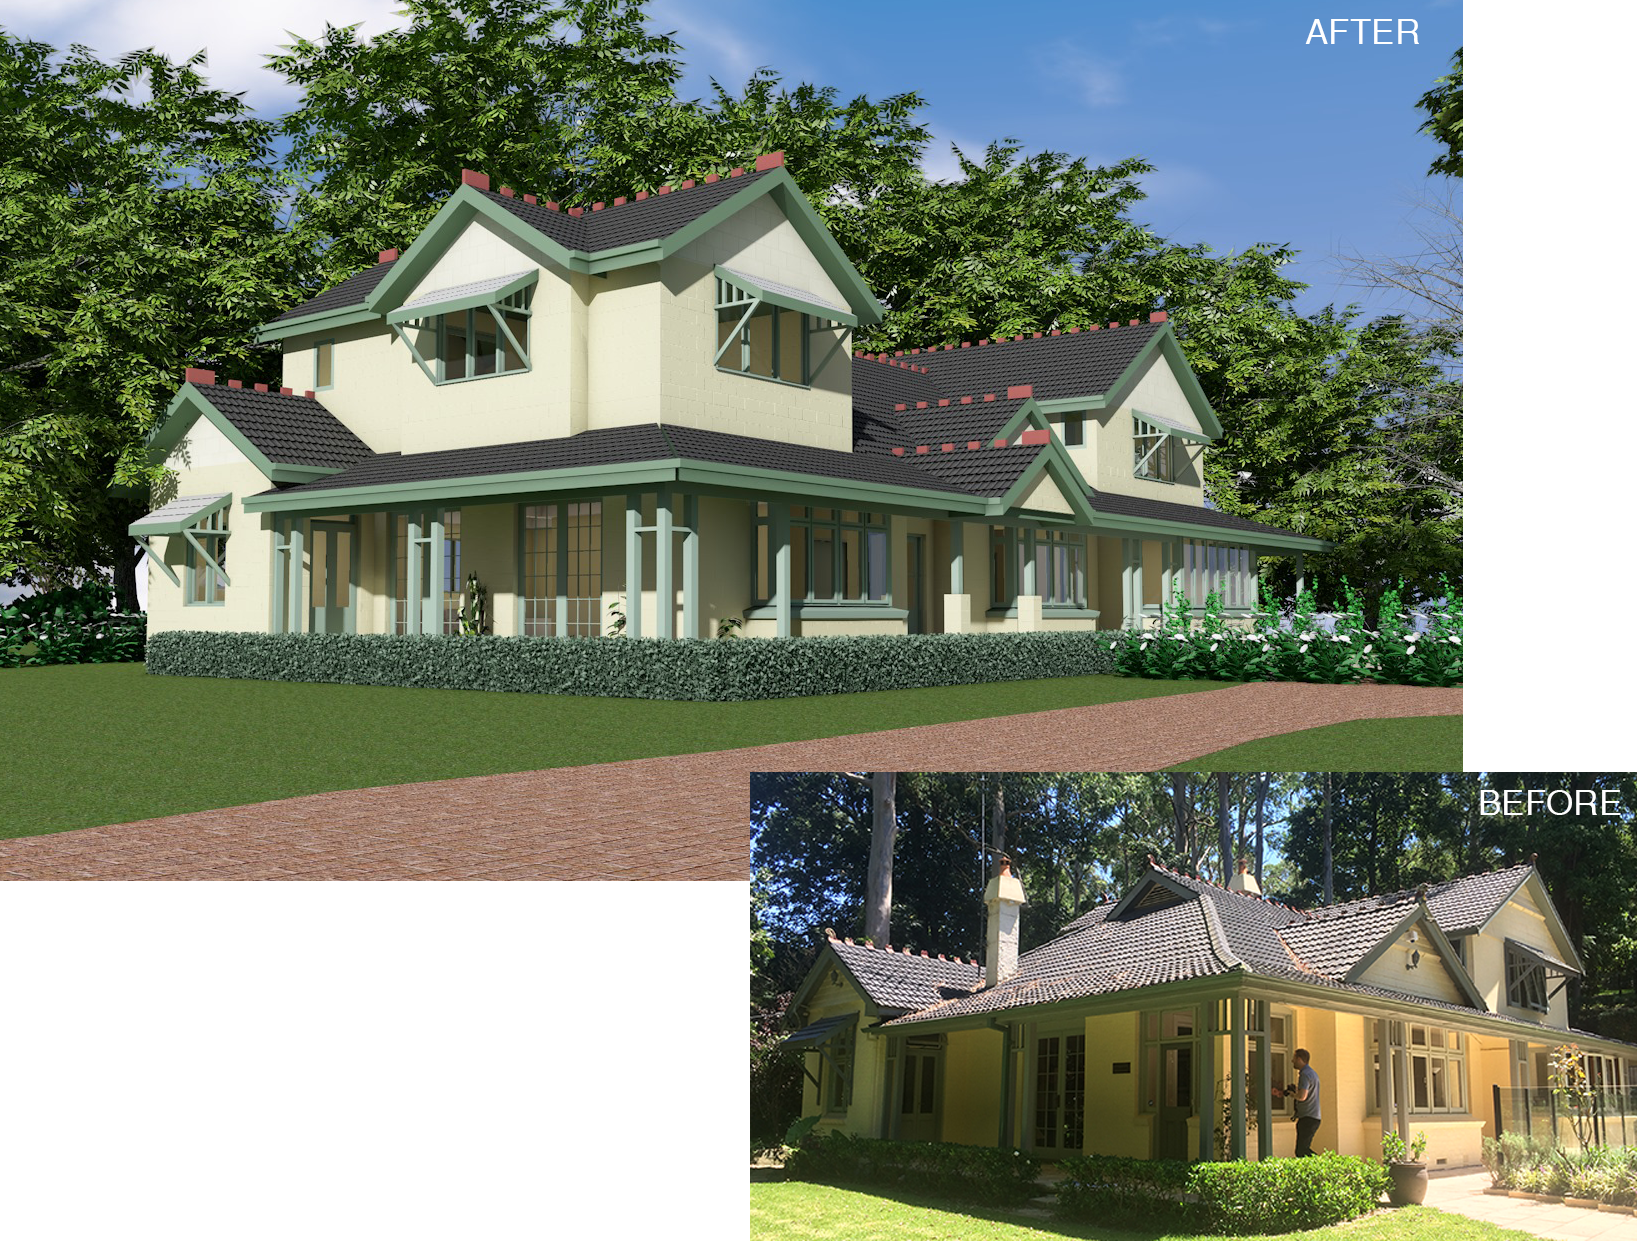 Before & After: Pymble NSW